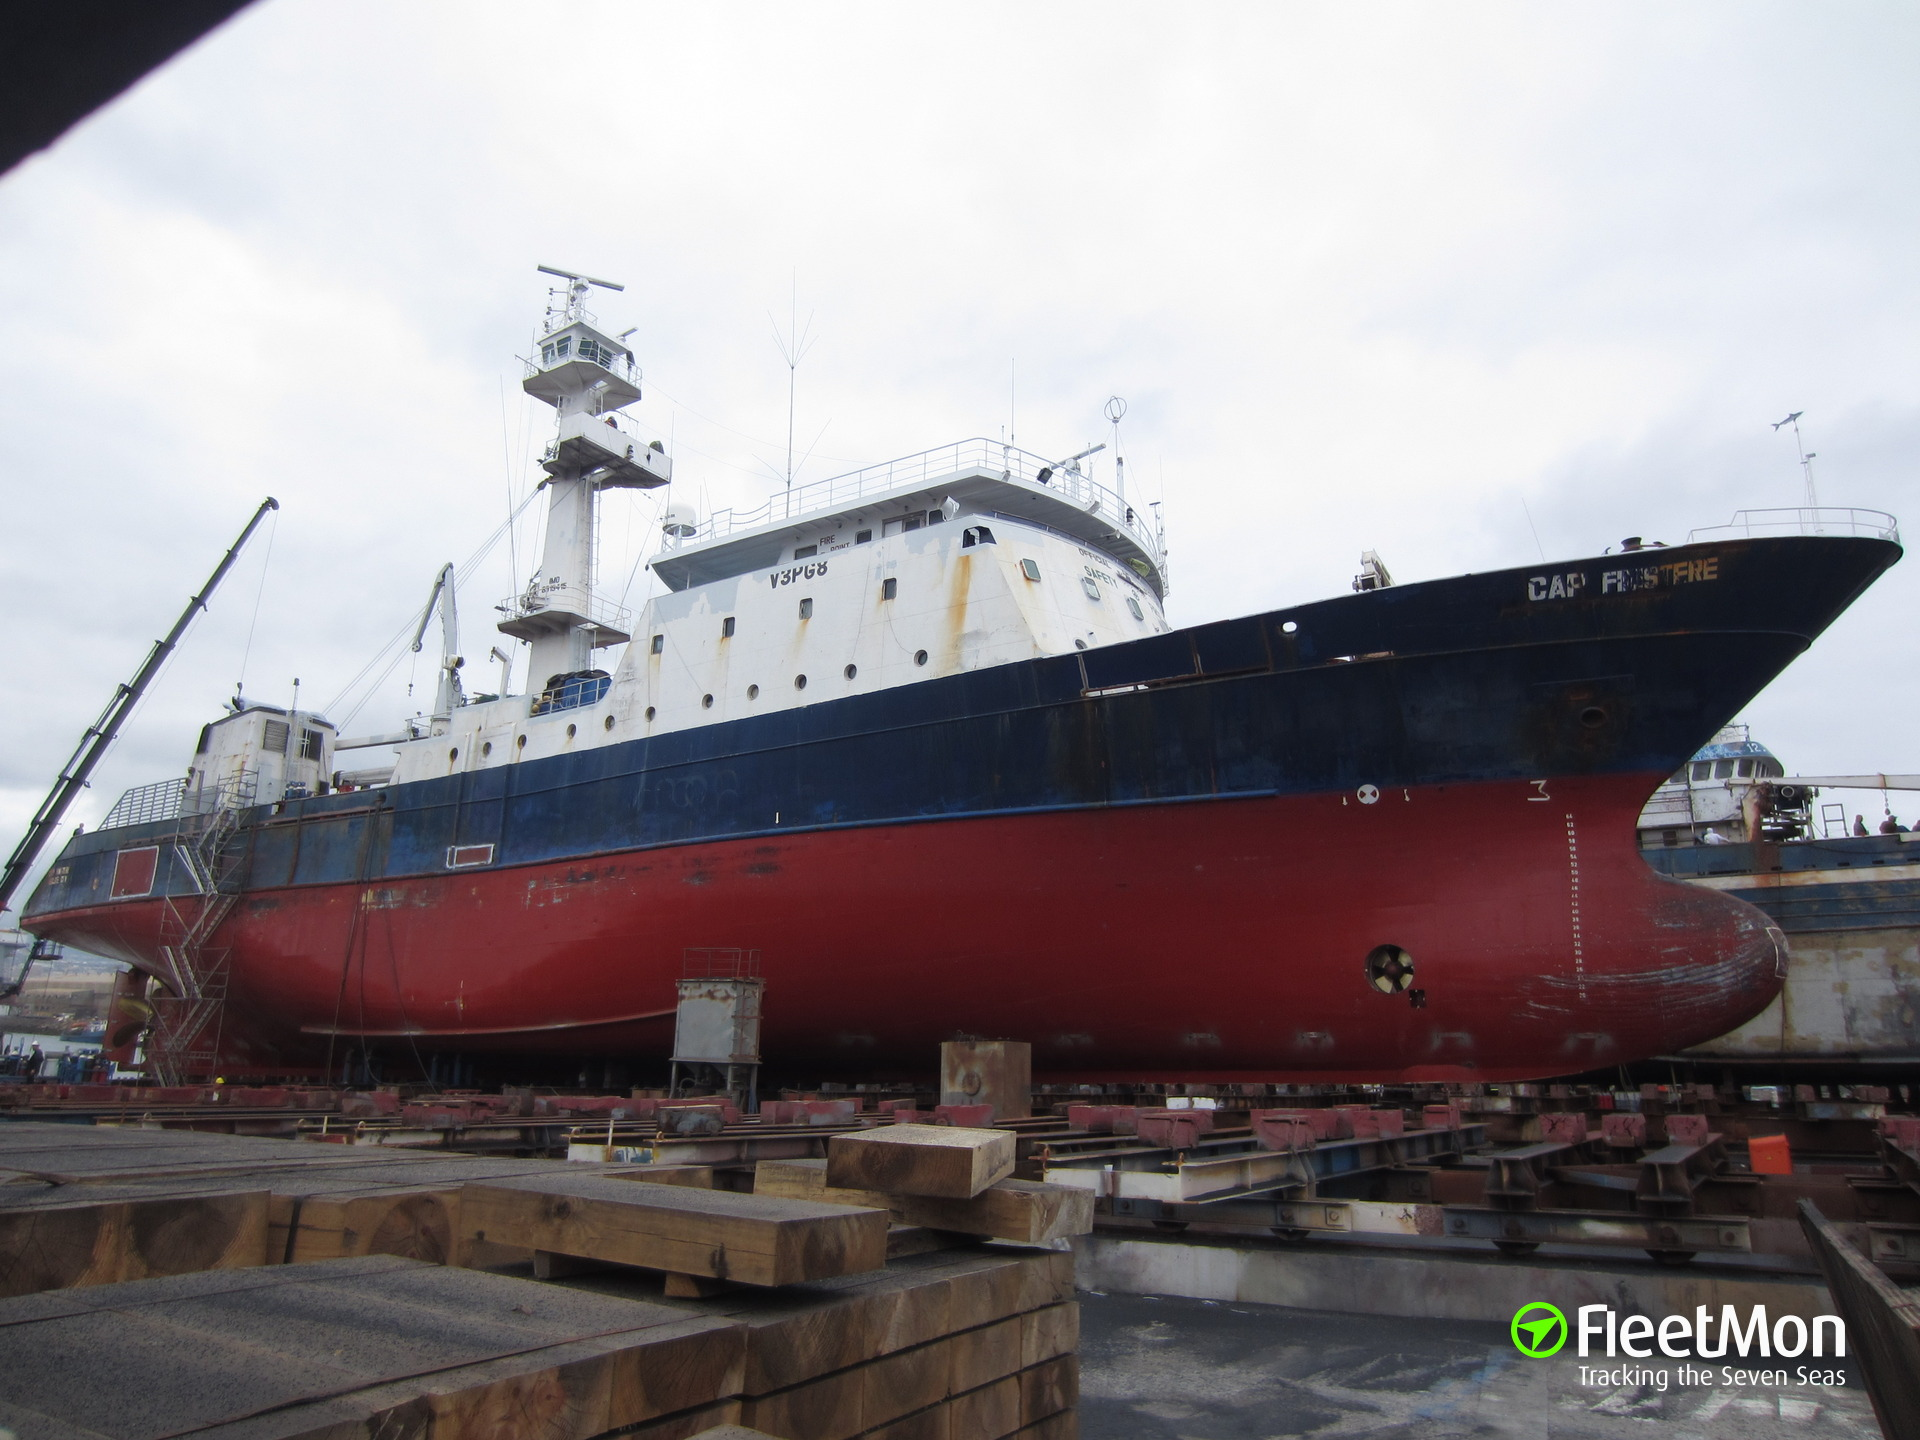 Tuna fishing vessel Cap Finistere disabled in South Atlantic